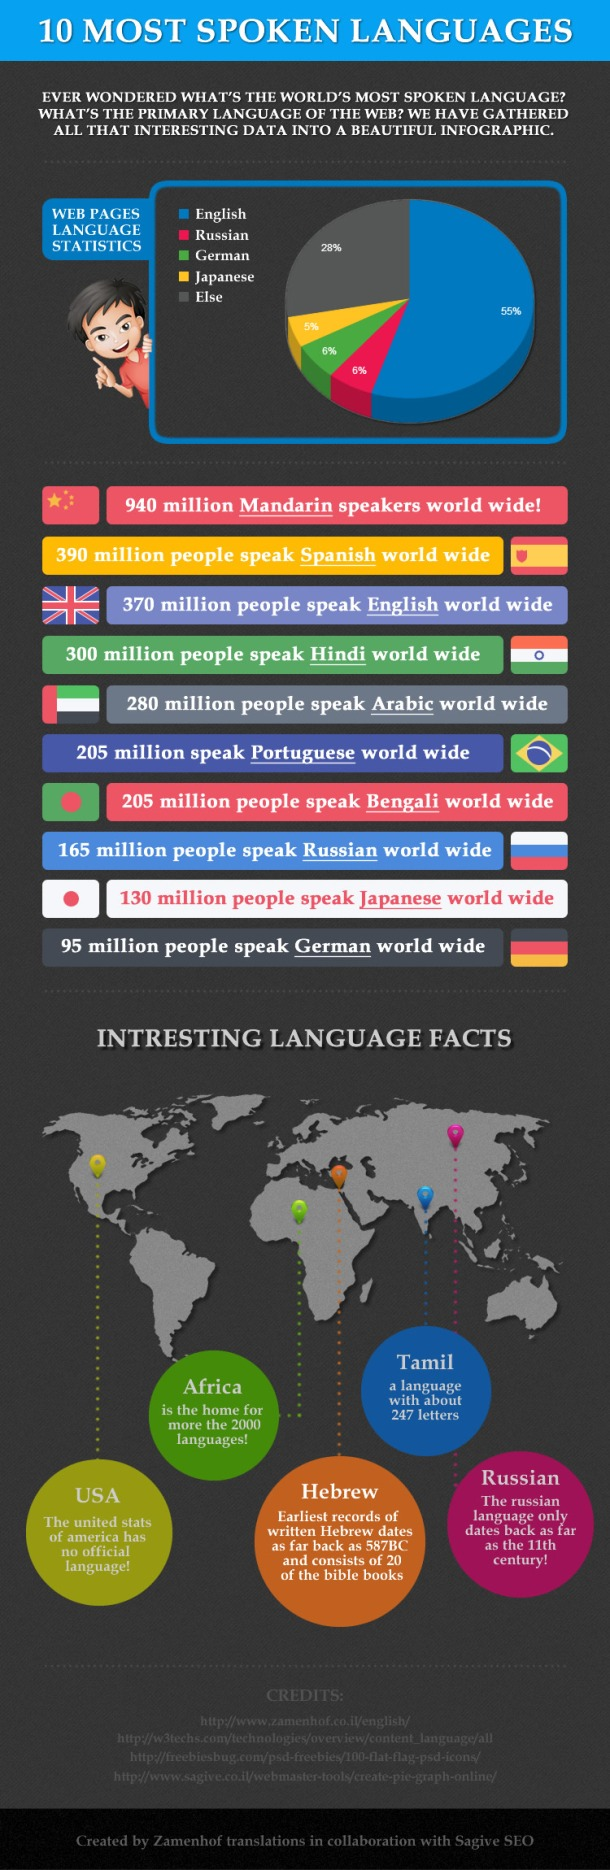 10 Most Spoken Languages